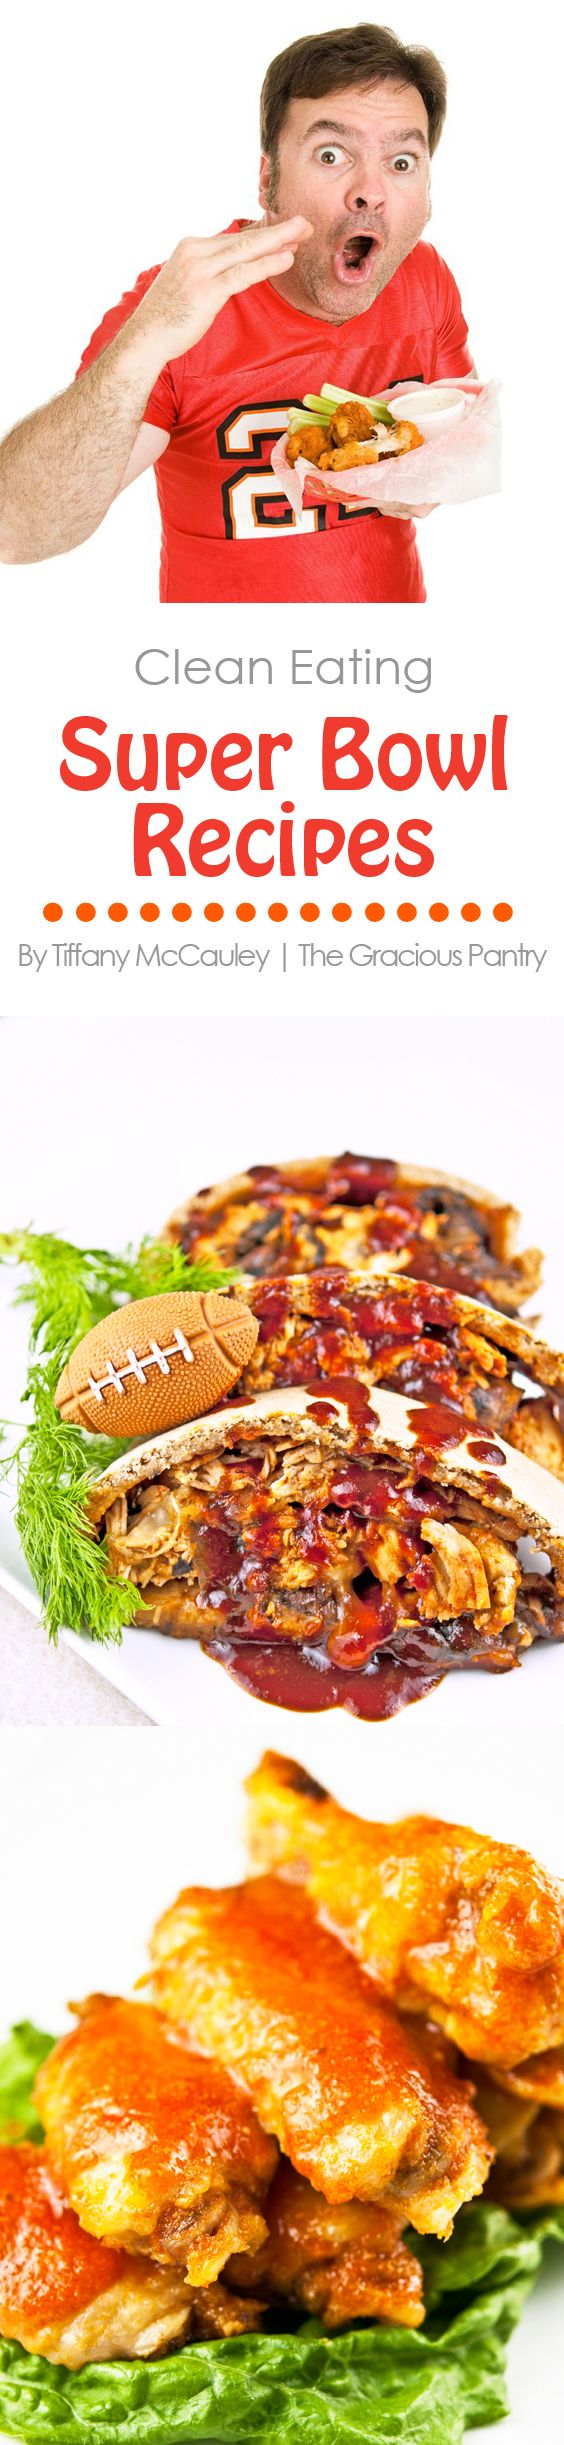 Clean Eating Super Bowl Recipes